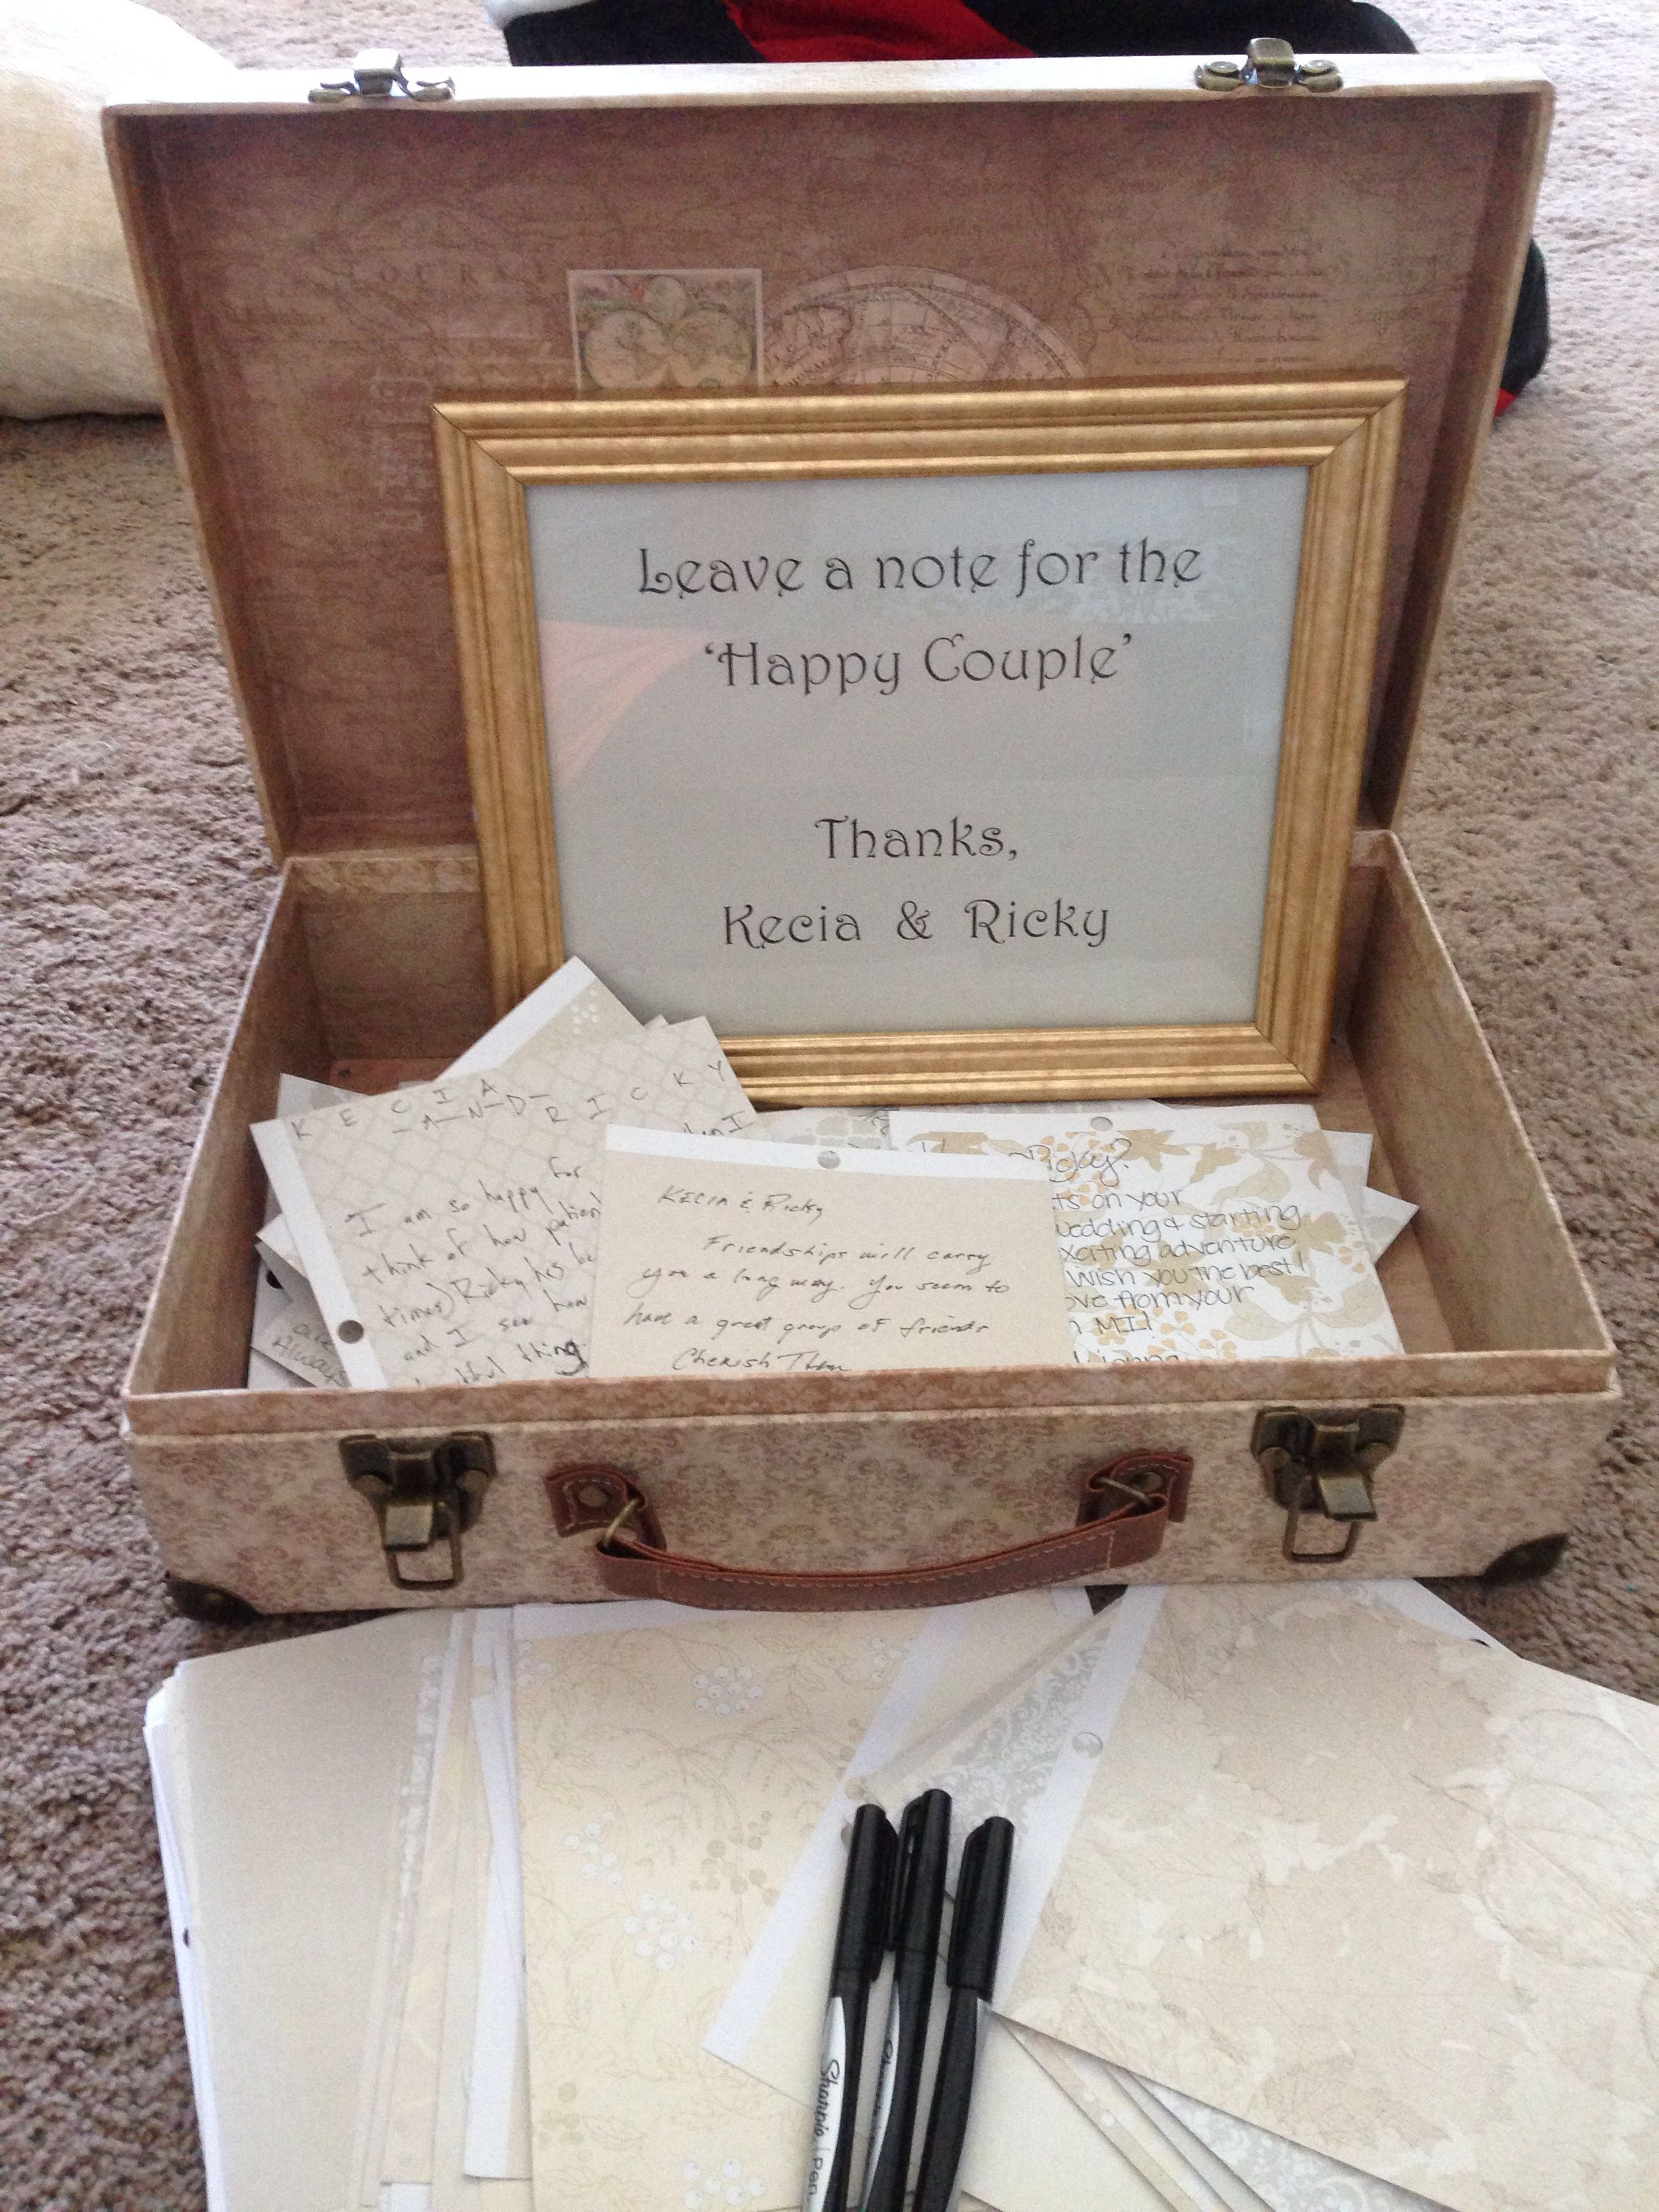 How to put scrapbook paper on wood - Wedding Guest Book Idea We Got A Trunk And Some Scrapbook Paper And Had Our